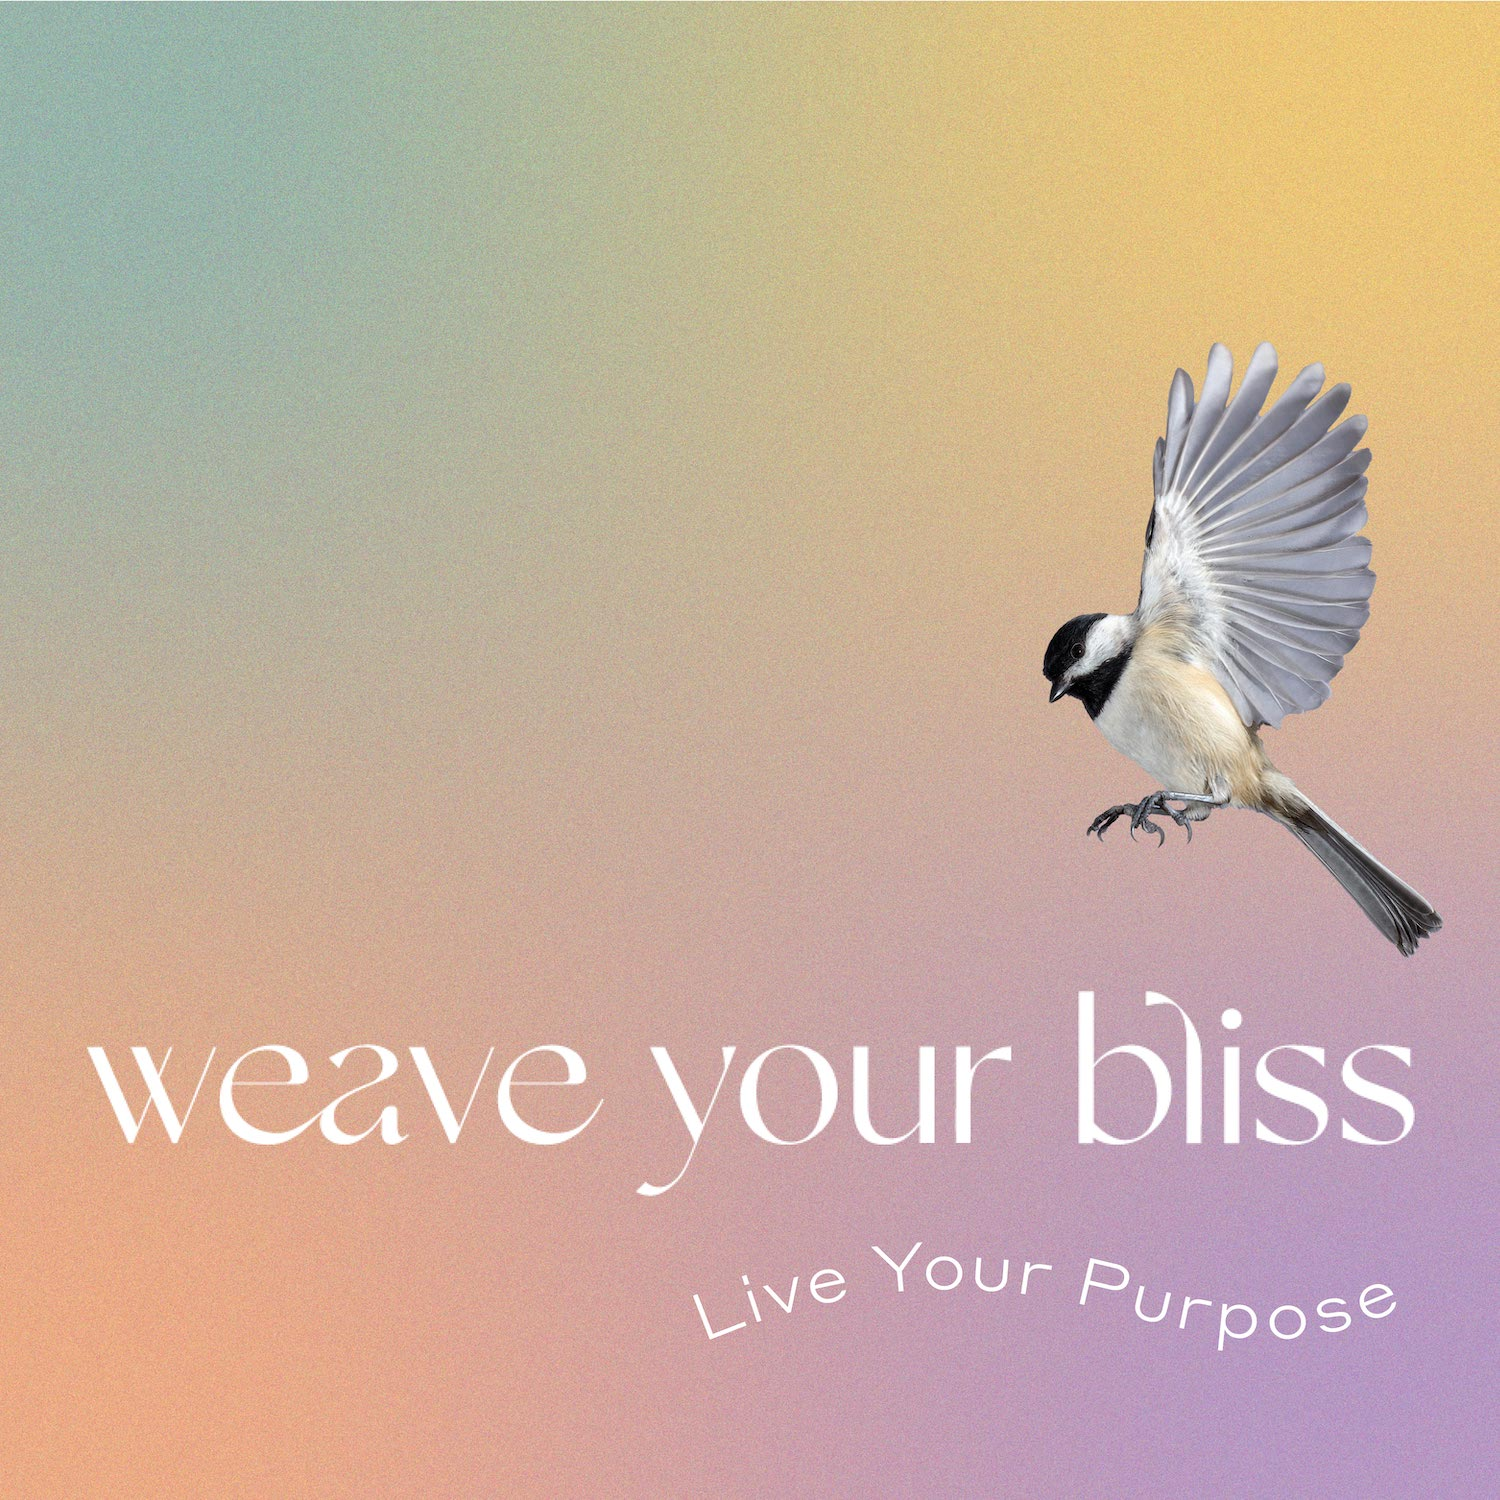 Weave Your Bliss